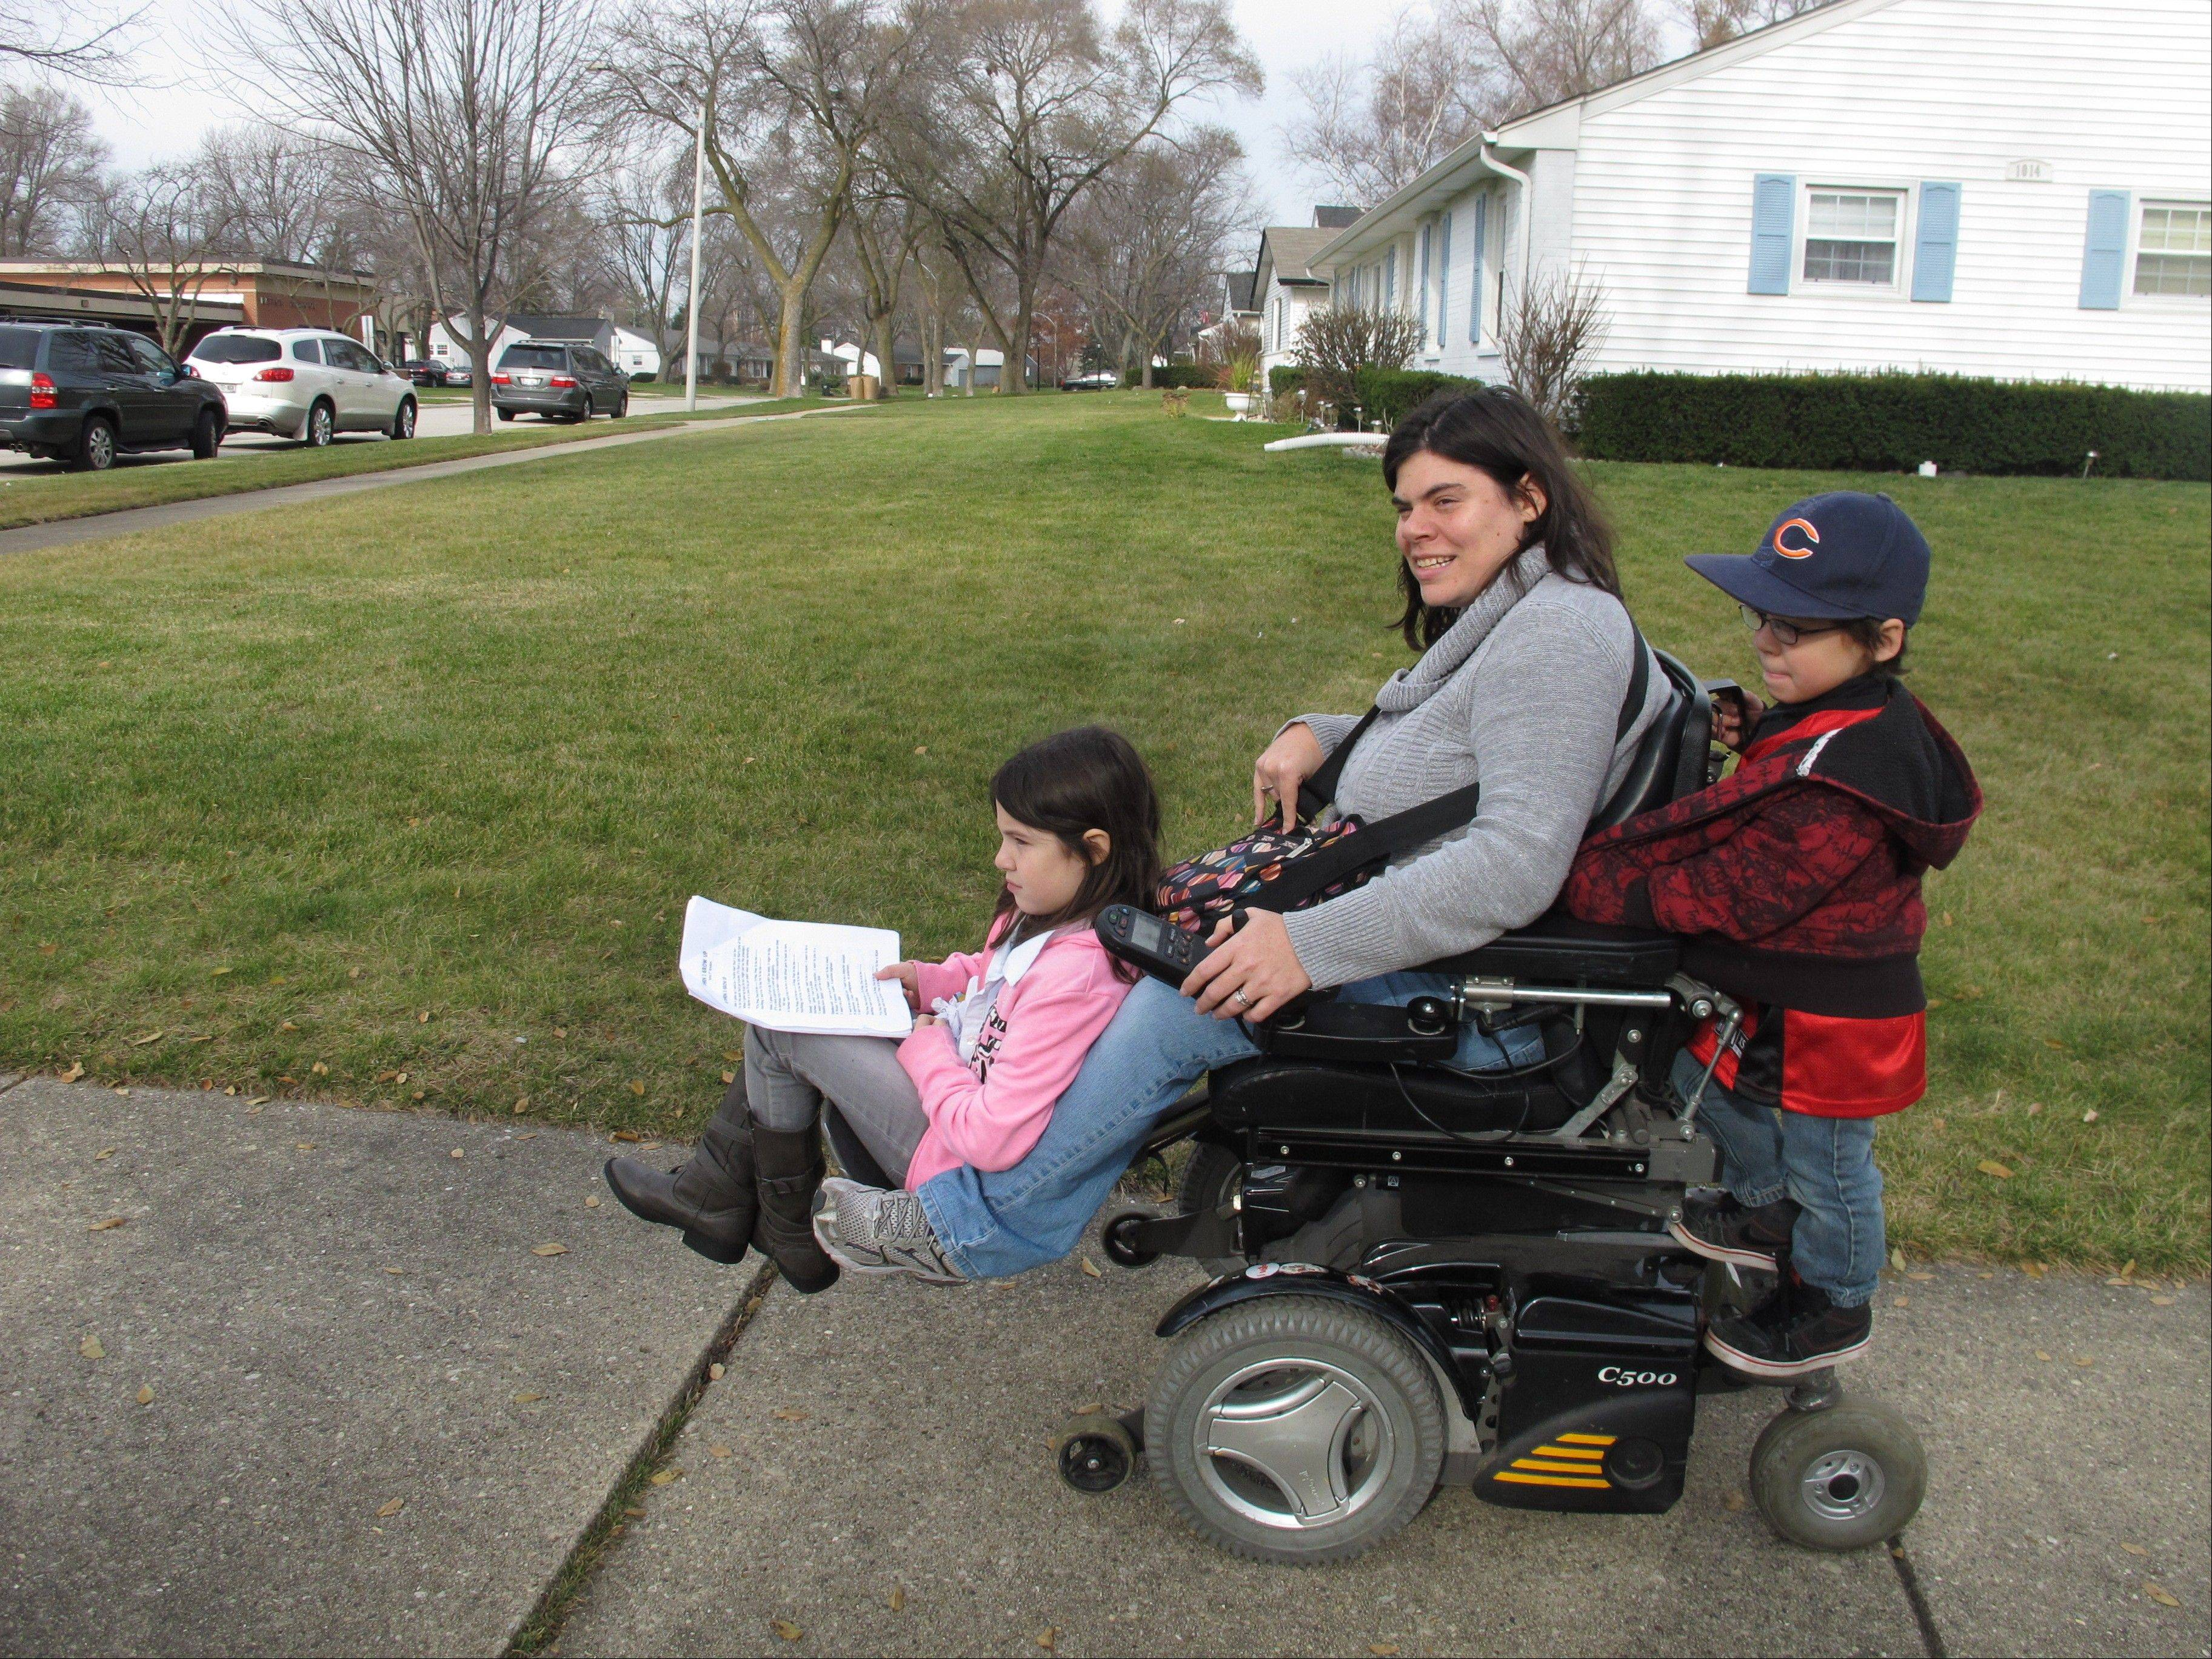 Twins Abigail and Noah Thomas, 8, ride on the motorized wheelchair of their mother, Jenn Thomas, on their way to a schoolbook fair in Arlington Heights. Thomas, a 36-year-old mom who has cerebral palsy, says her twins occasionally complain about having to do a few extra chores around the house to help her.